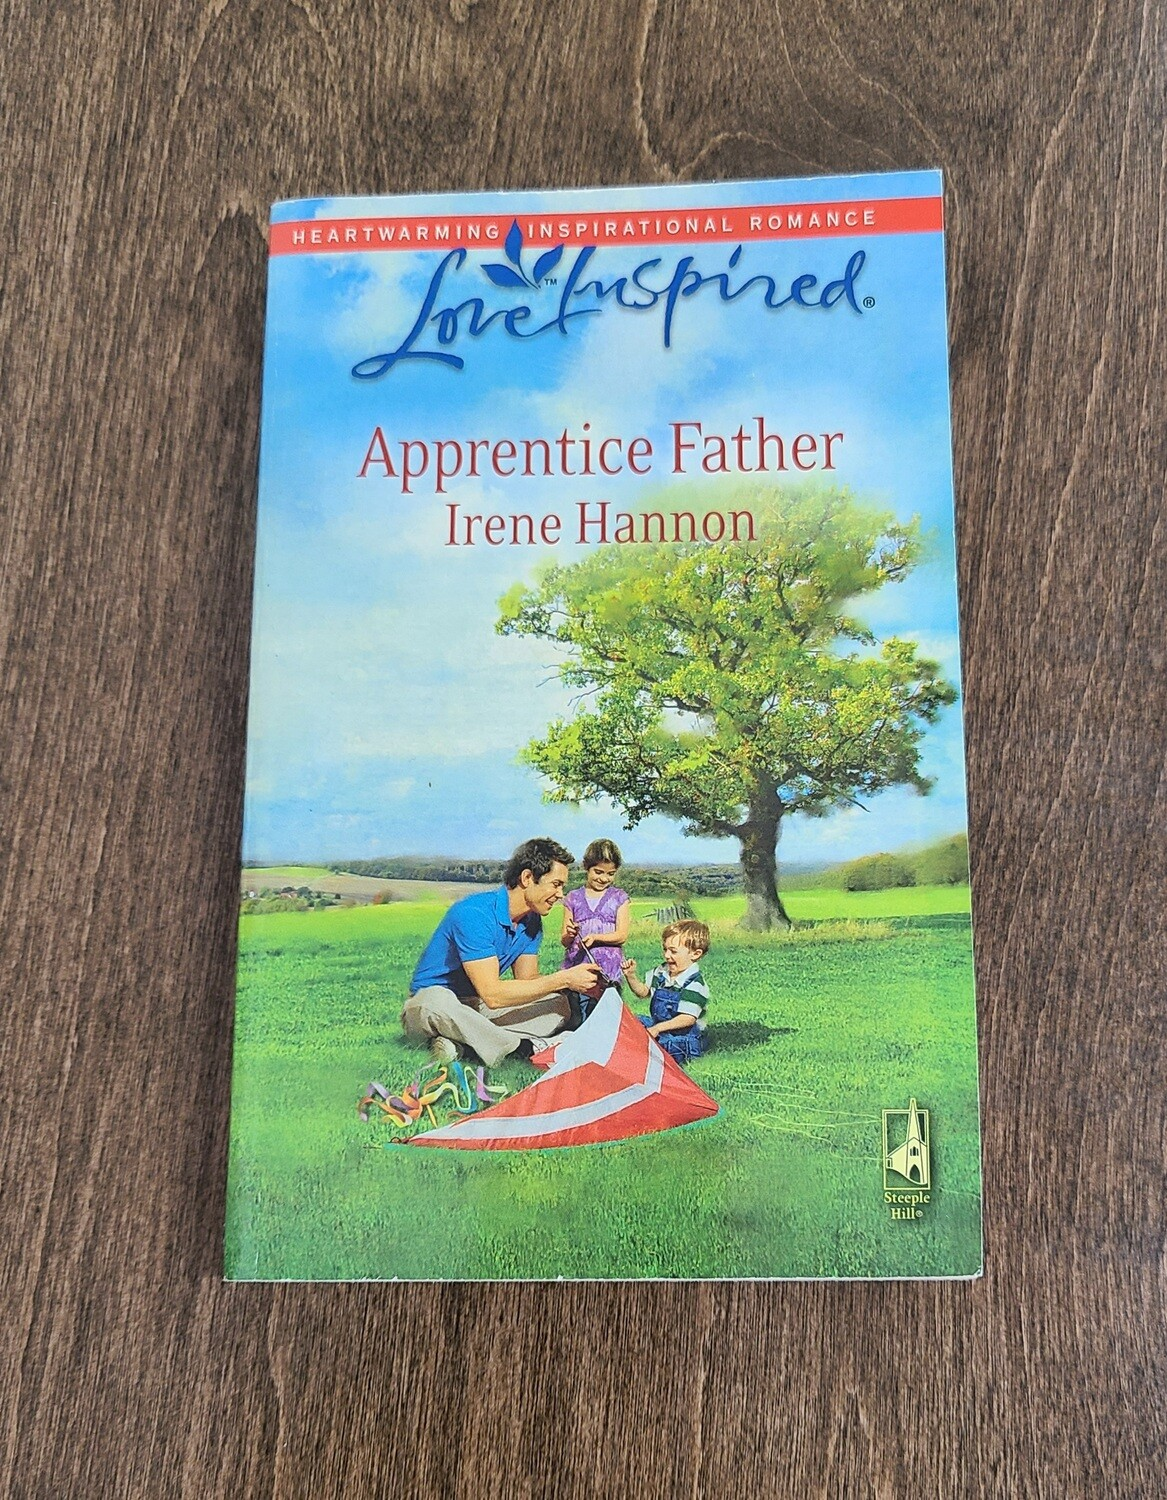 Apprentice Father by Irene Hannon